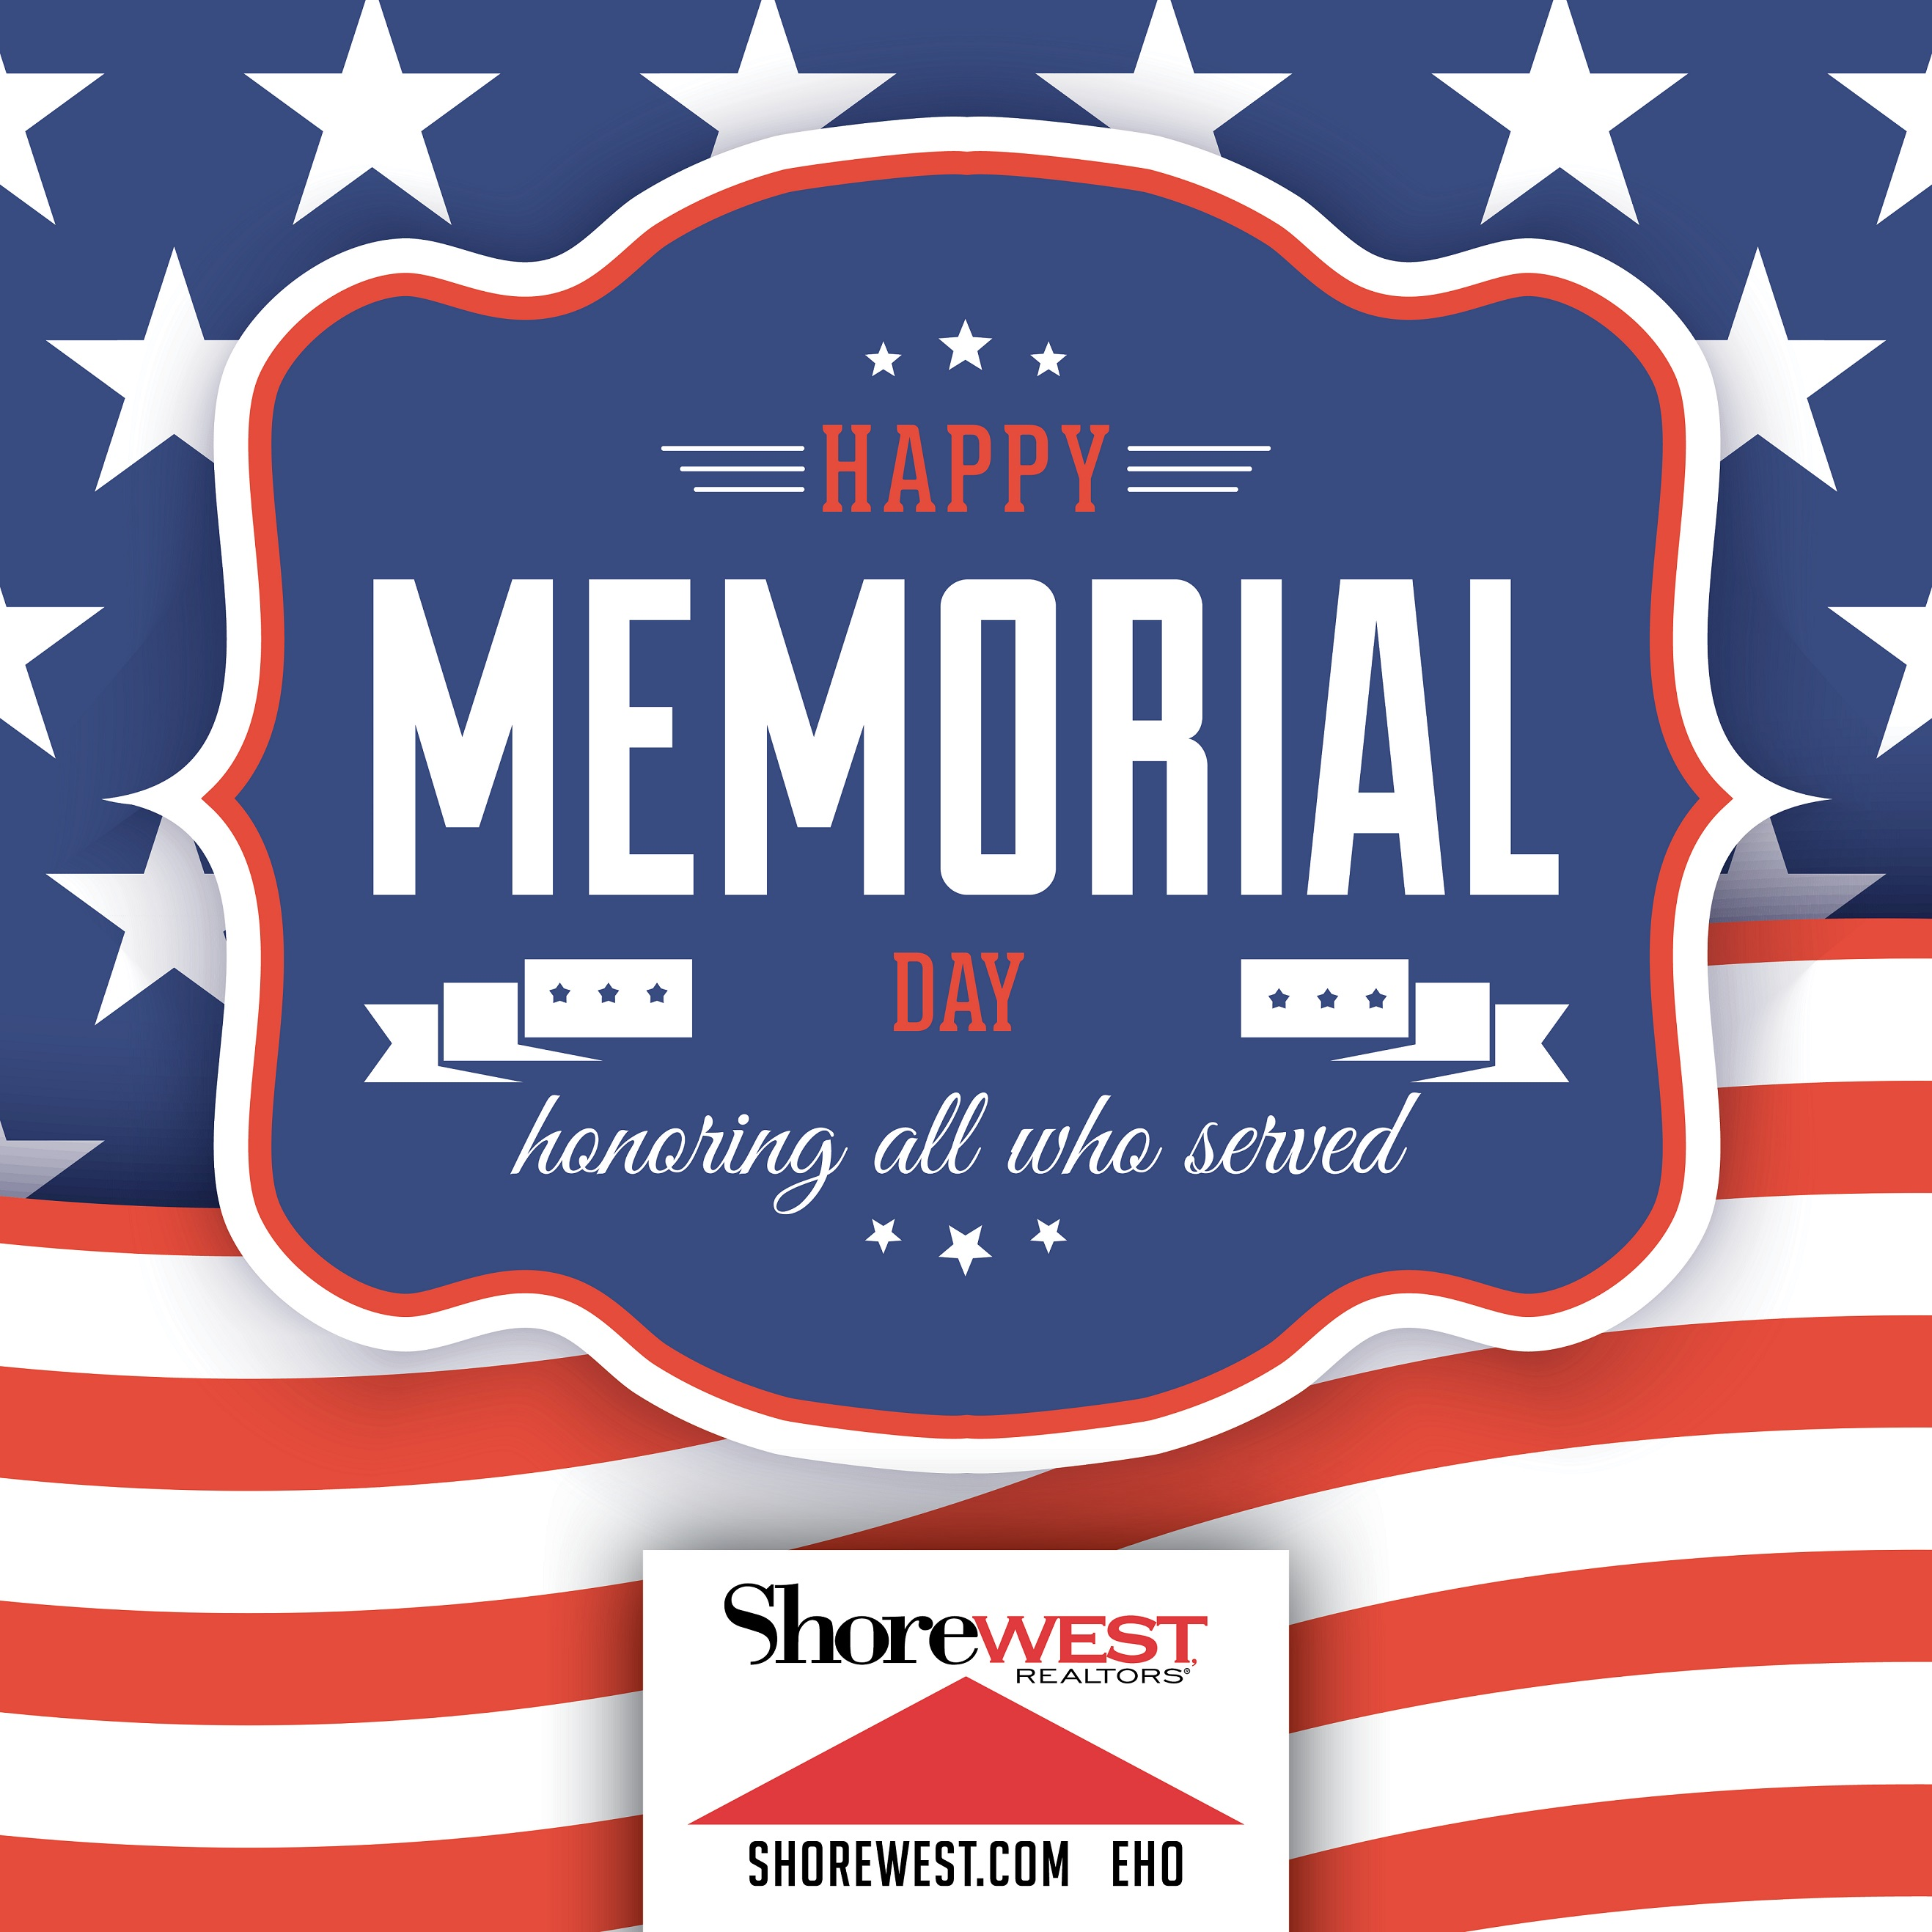 Memorial Day Share 0516 2